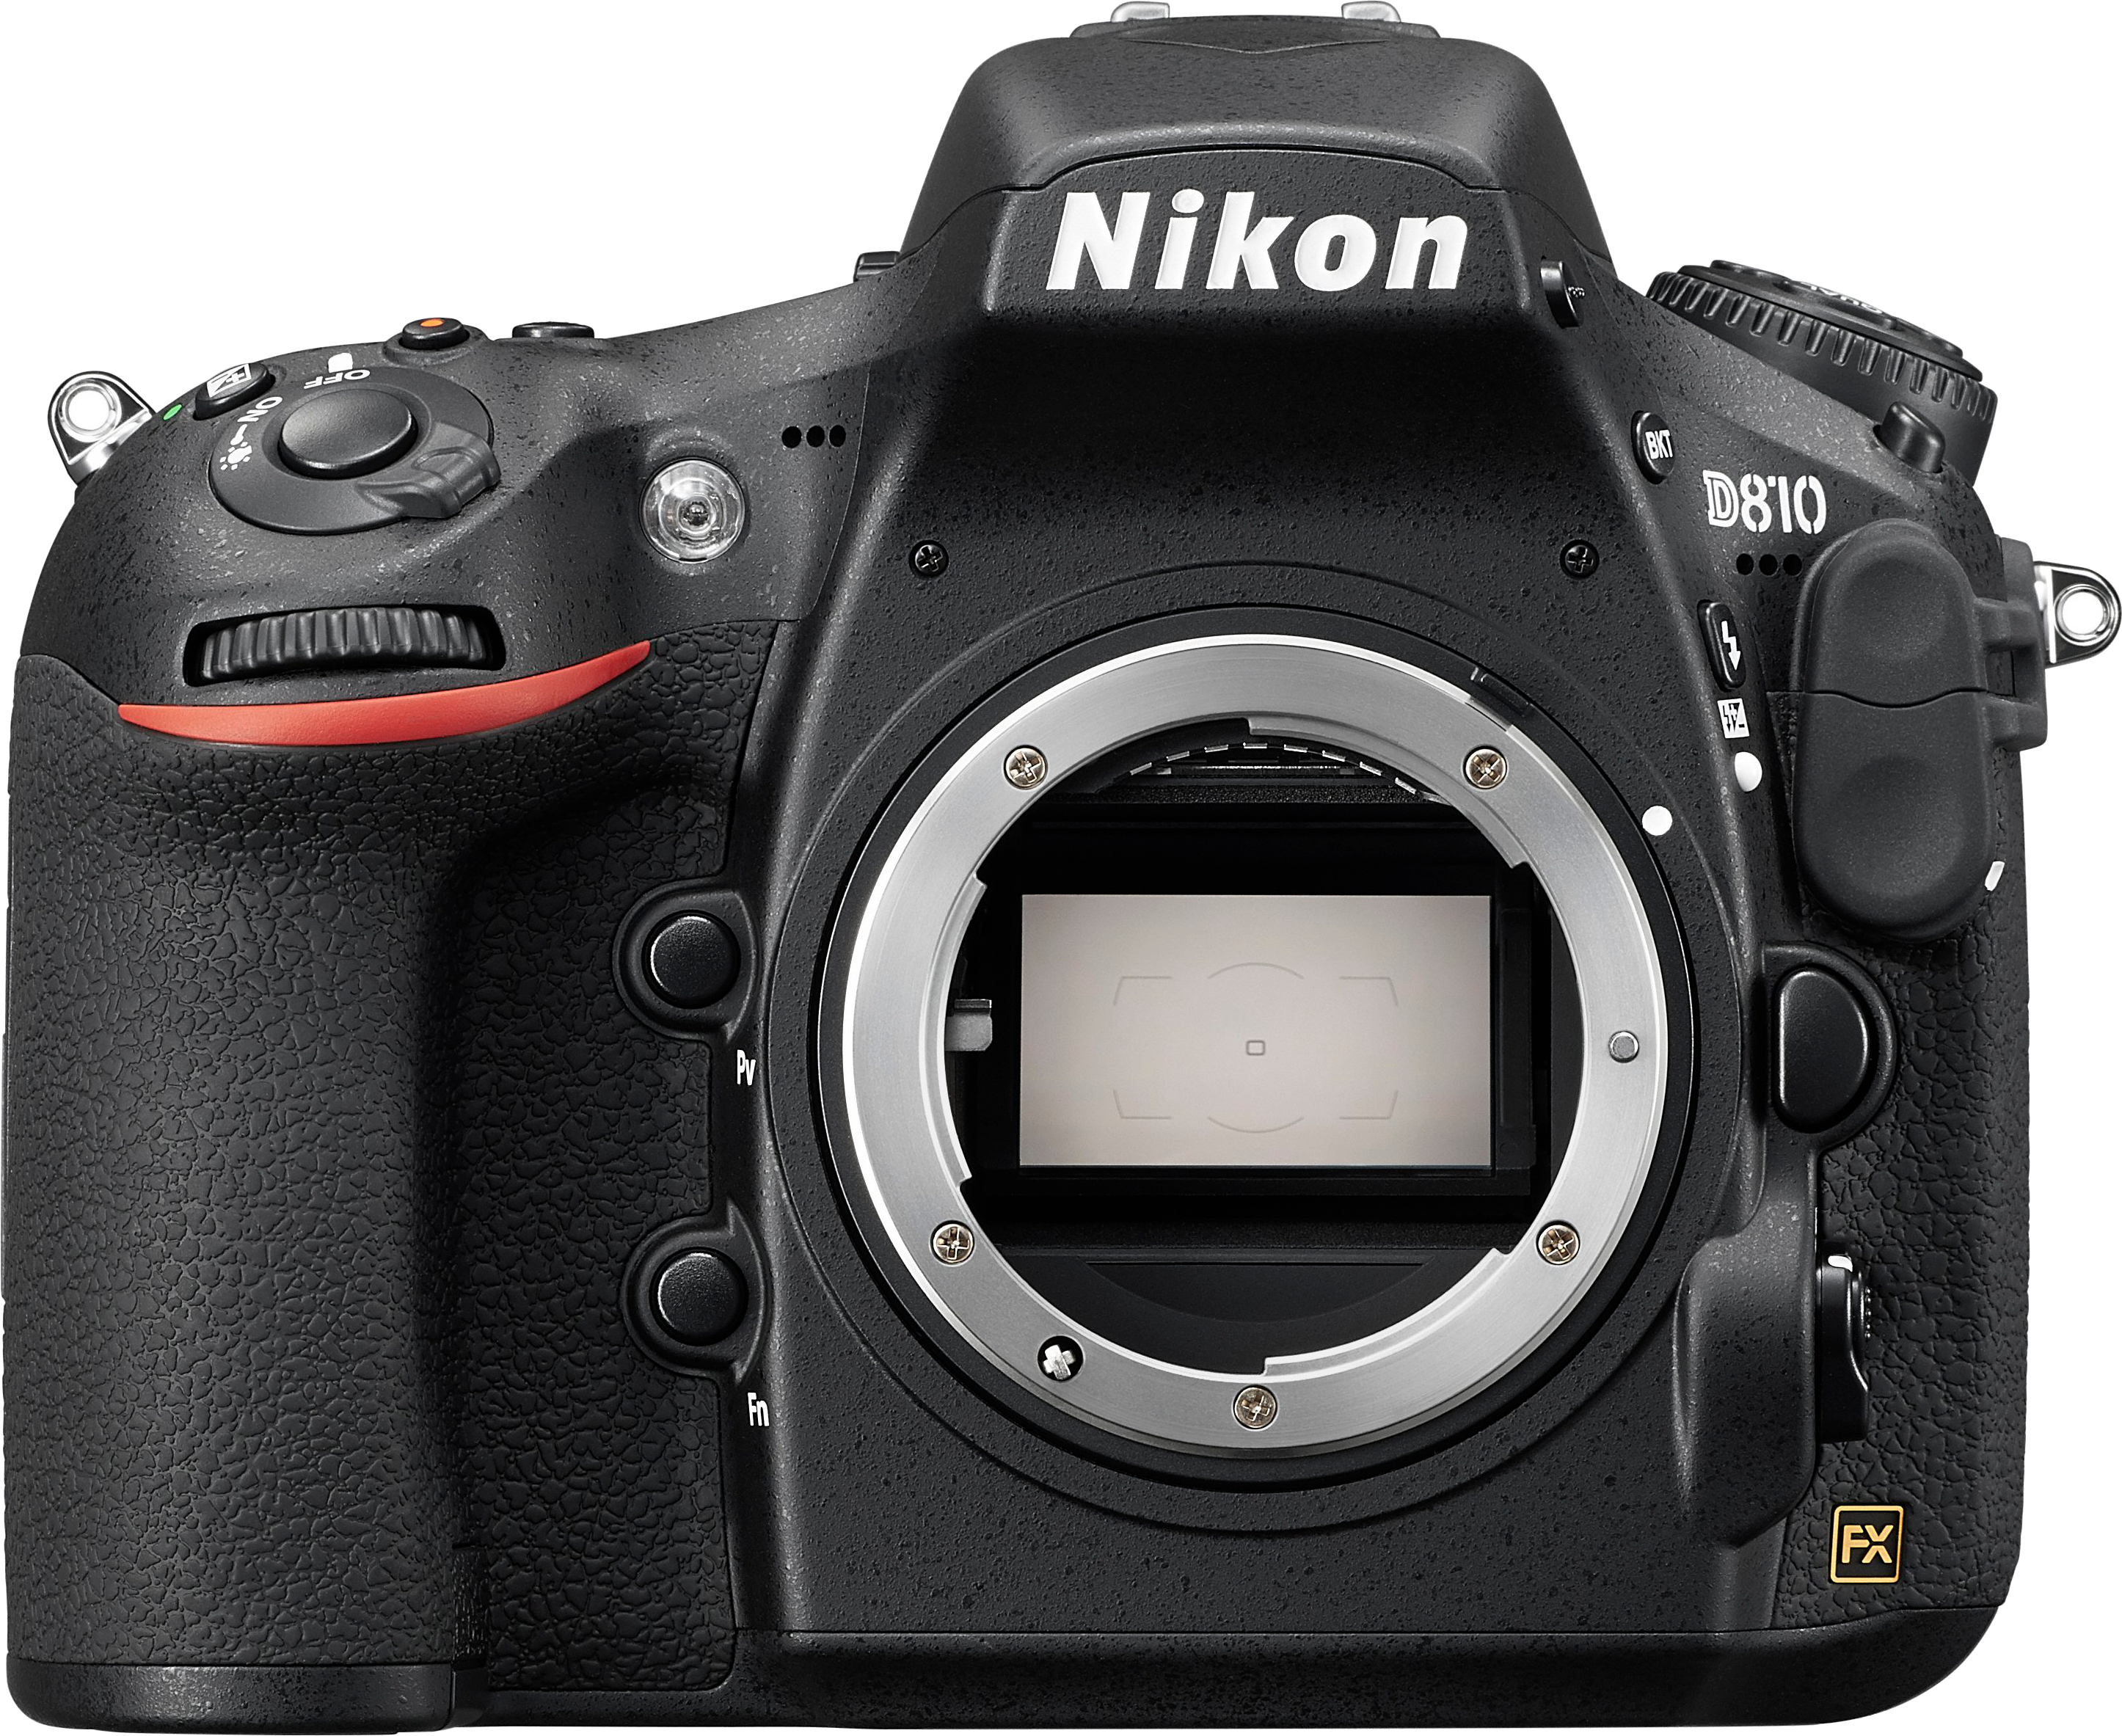 Full frame 36 megapixel DSLR with 1080p/60fps video.